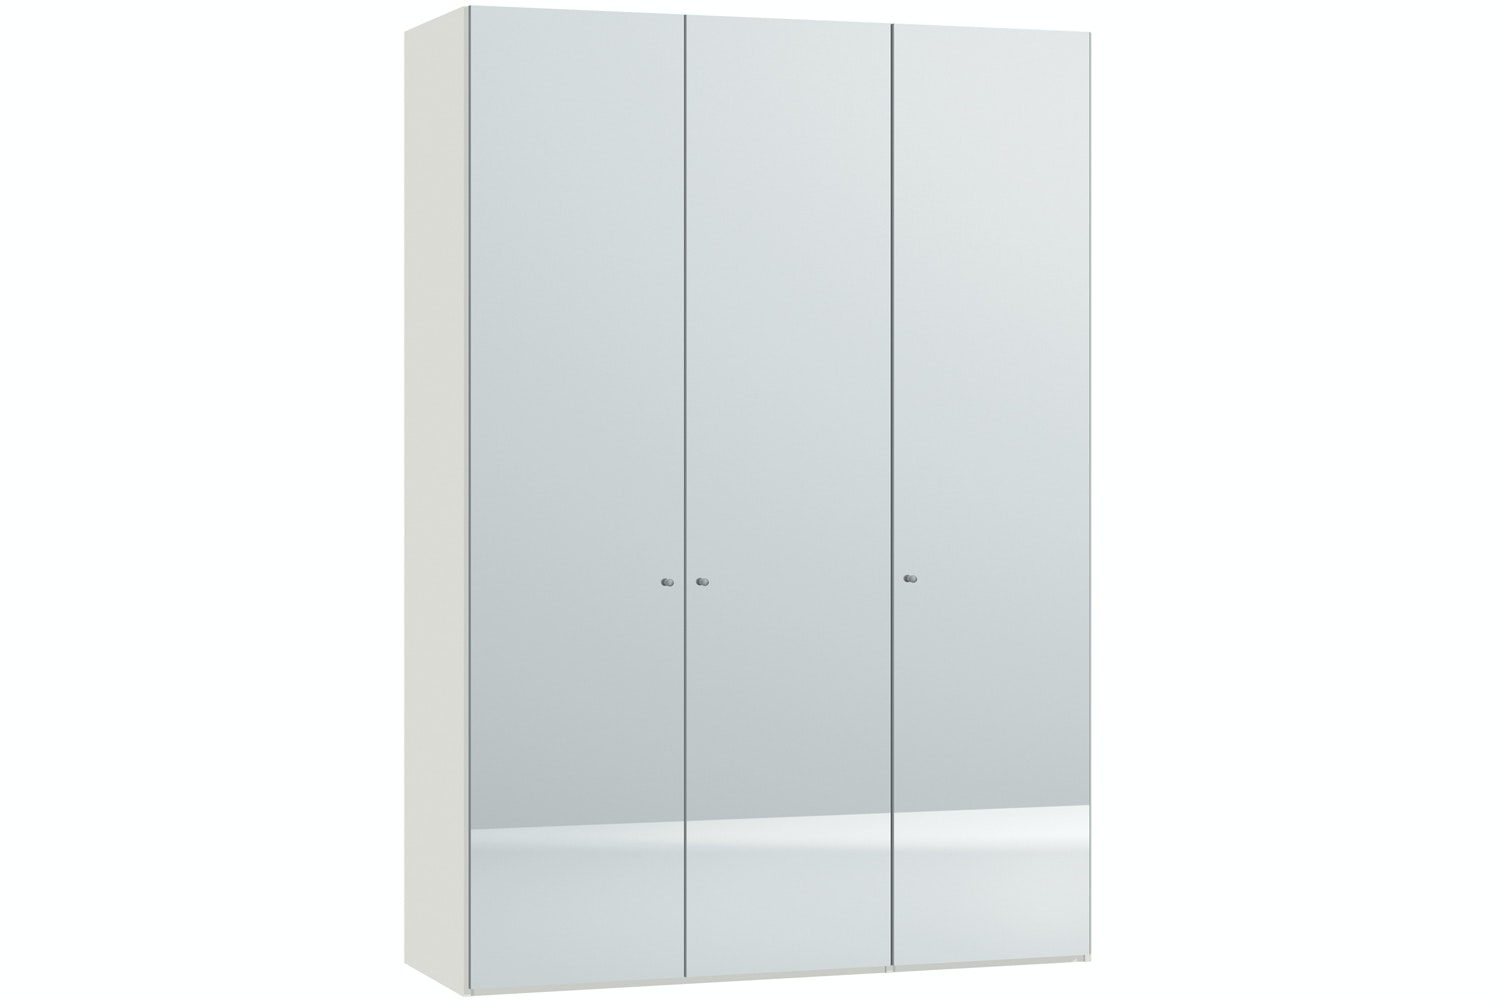 Mila Hinged 3 Door Wardrobe 152Cm | Mirror Body White